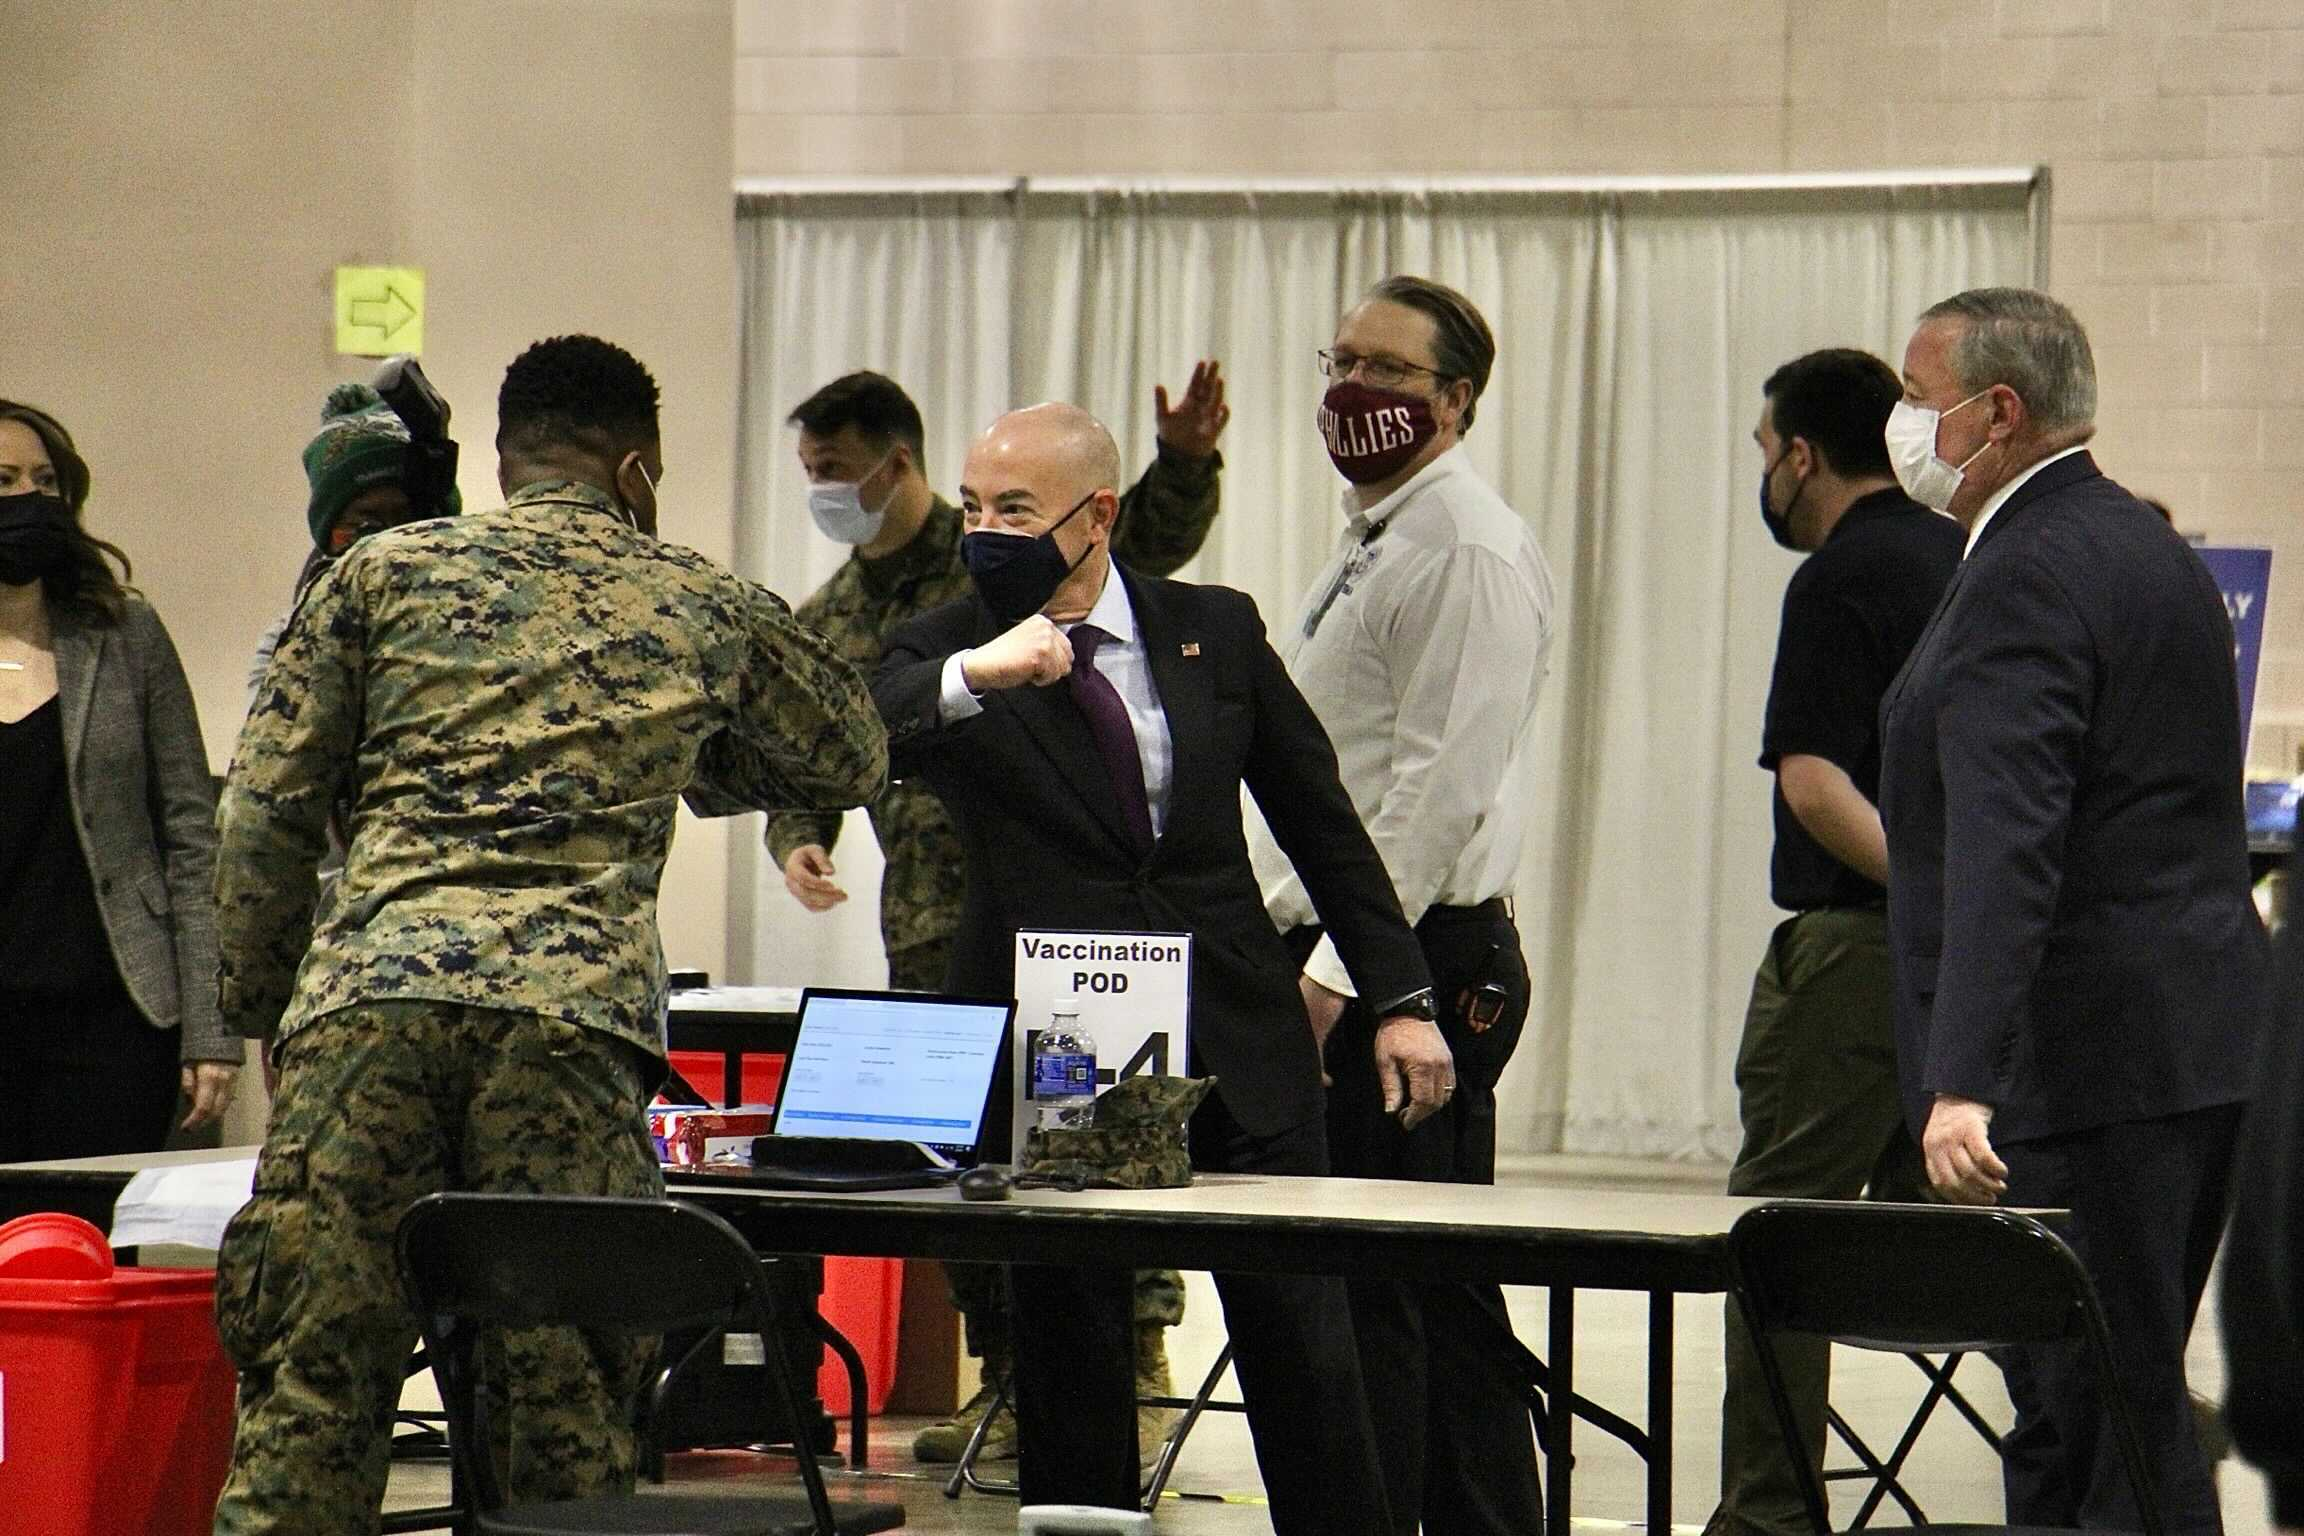 Department of Homeland Security Secretary Alejandro Mayorkas elbow bumps a National Guard member during a tour of FEMA's community vaccination site at the Pennsylvania Convention Center